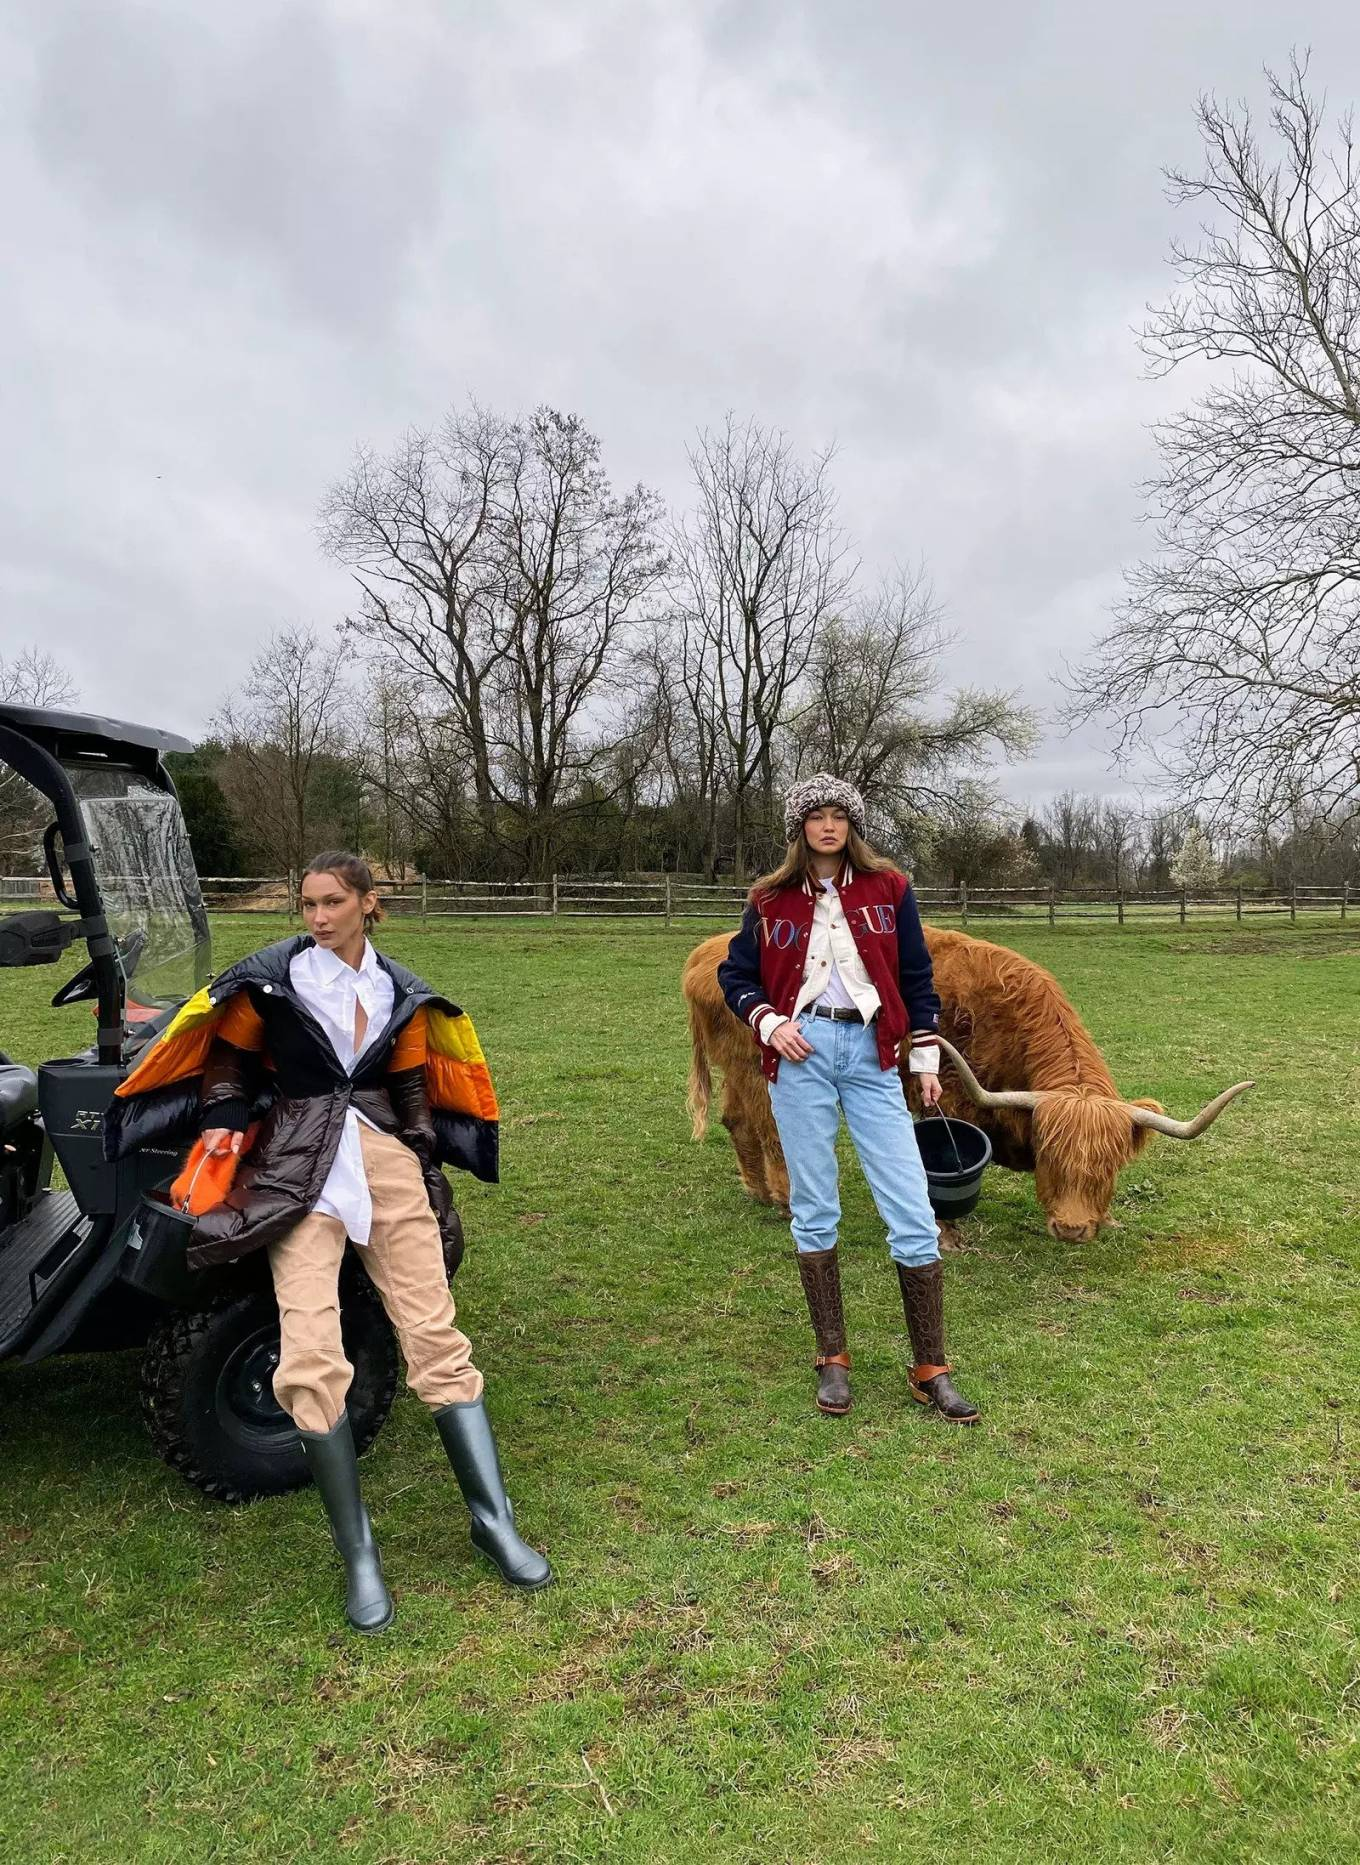 Bella and Gigi Hadid - On Their Lives in Quarantine for US Vogue (April 2020)